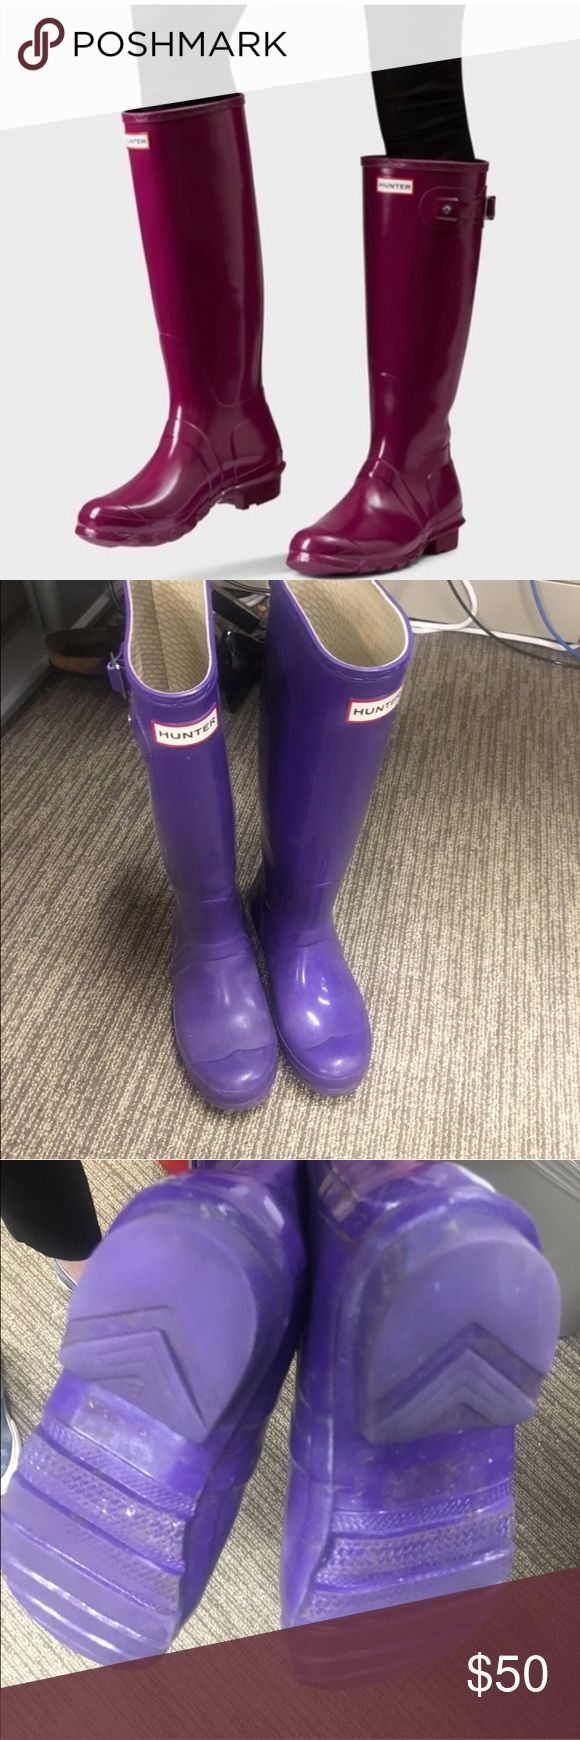 💯auth Hunter Wellington boots Purple! EUC! 💞 Purple (see last 3 photos) hunter Wellington boots (classic tall) purchased personally at Nordstrom in King of Prussia. In great condition with light wear to soles and upper. NOTE: these are a size 35 but fit BIG!!! They fit like a 5.5/6M (I wear a 6 and they felt BIG ON ME). Hunter Boots Shoes Winter & Rain Boots